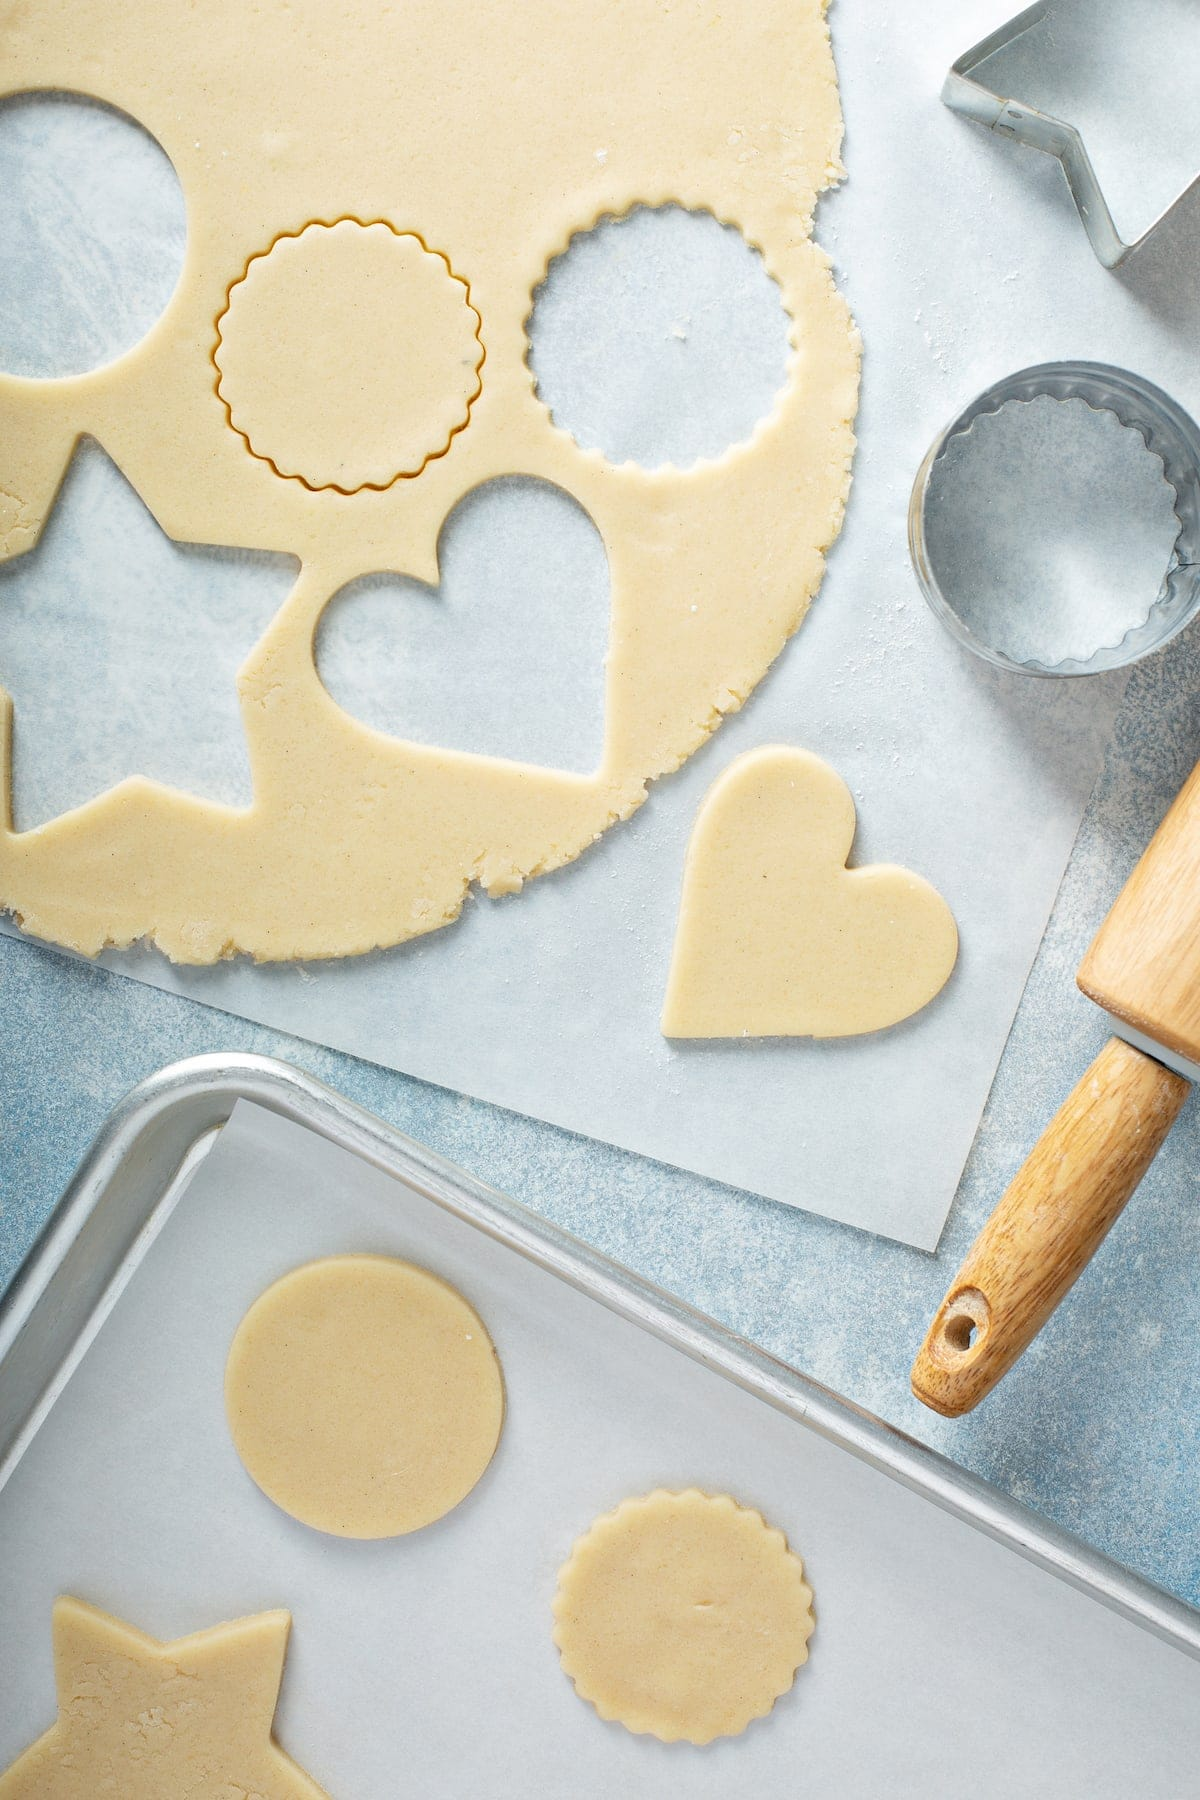 cut out Sugar cookie dough